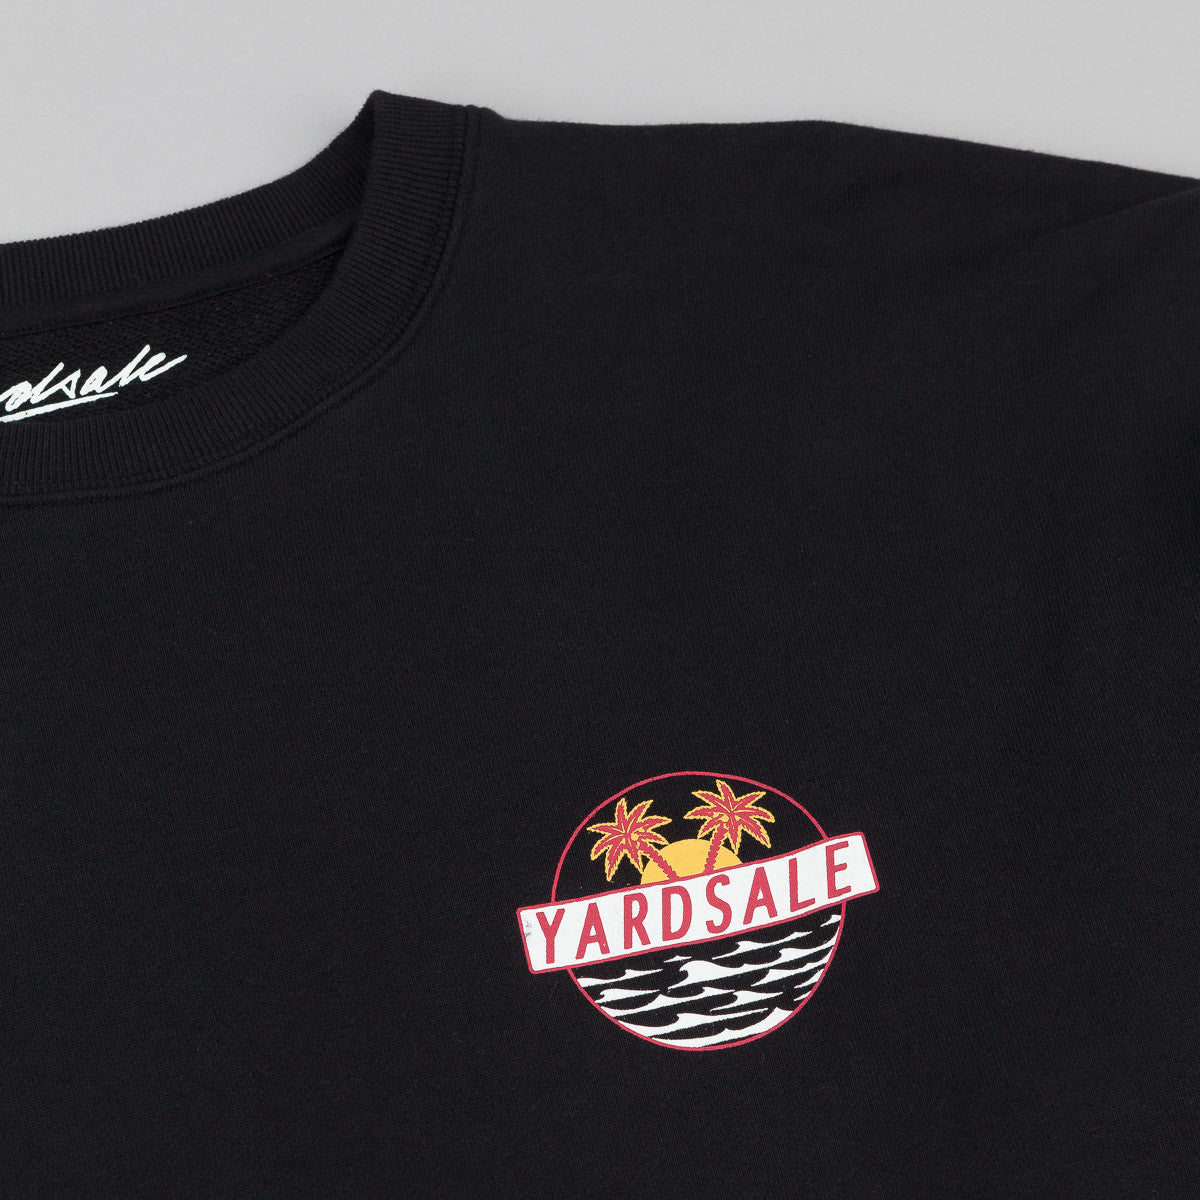 Yardsale Crew Neck Sweatshirt - Black